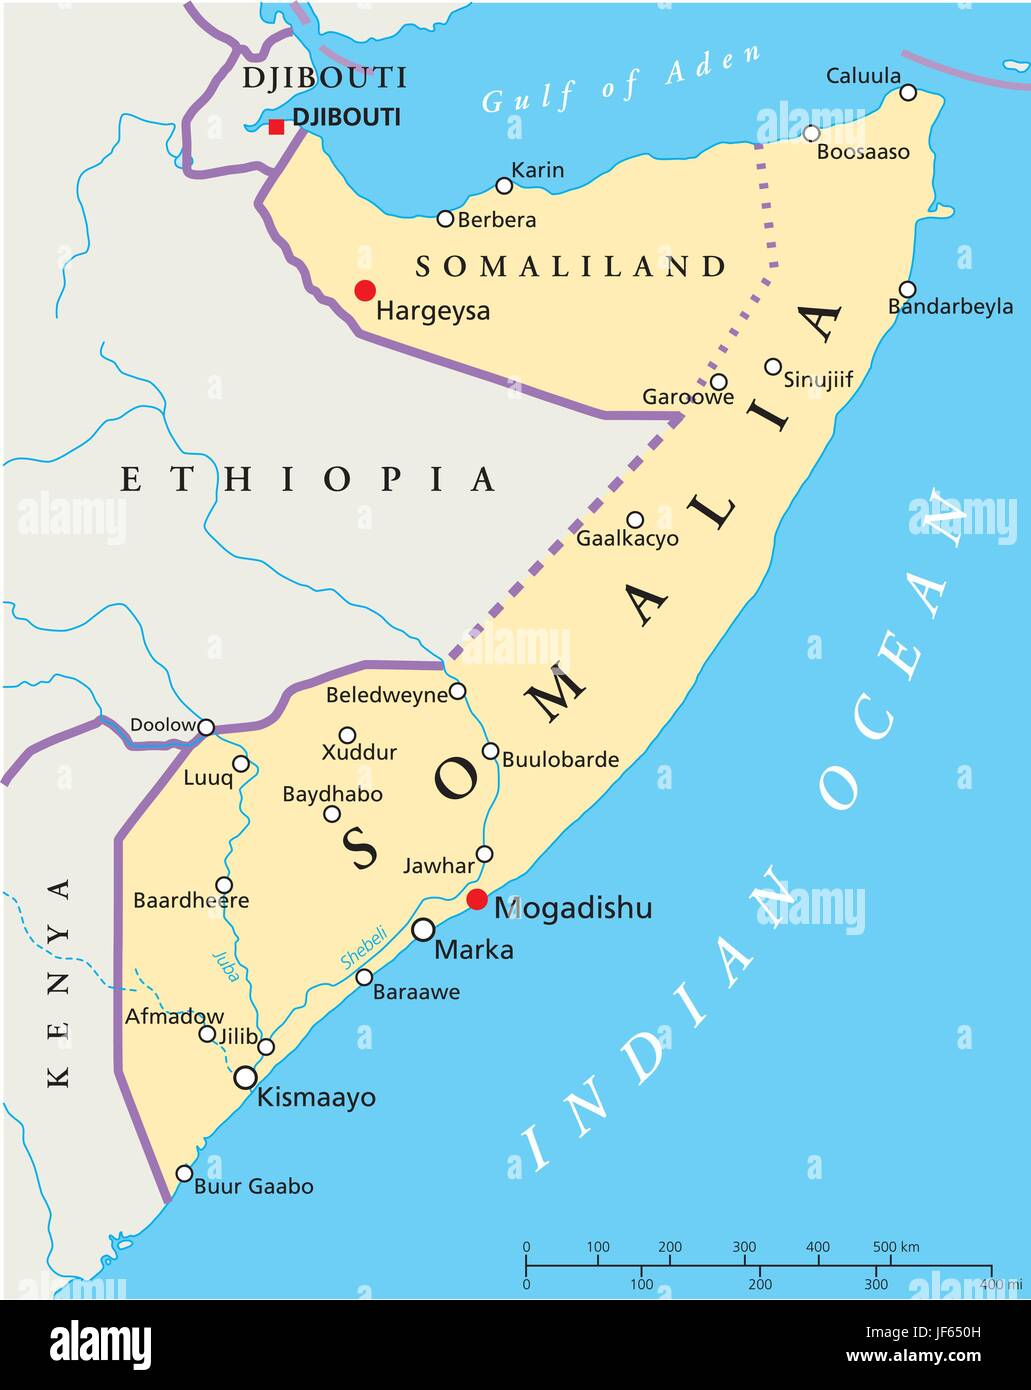 Somalia map atlas map of the world africa kenya illustration somalia map atlas map of the world africa kenya illustration abstract gumiabroncs Image collections